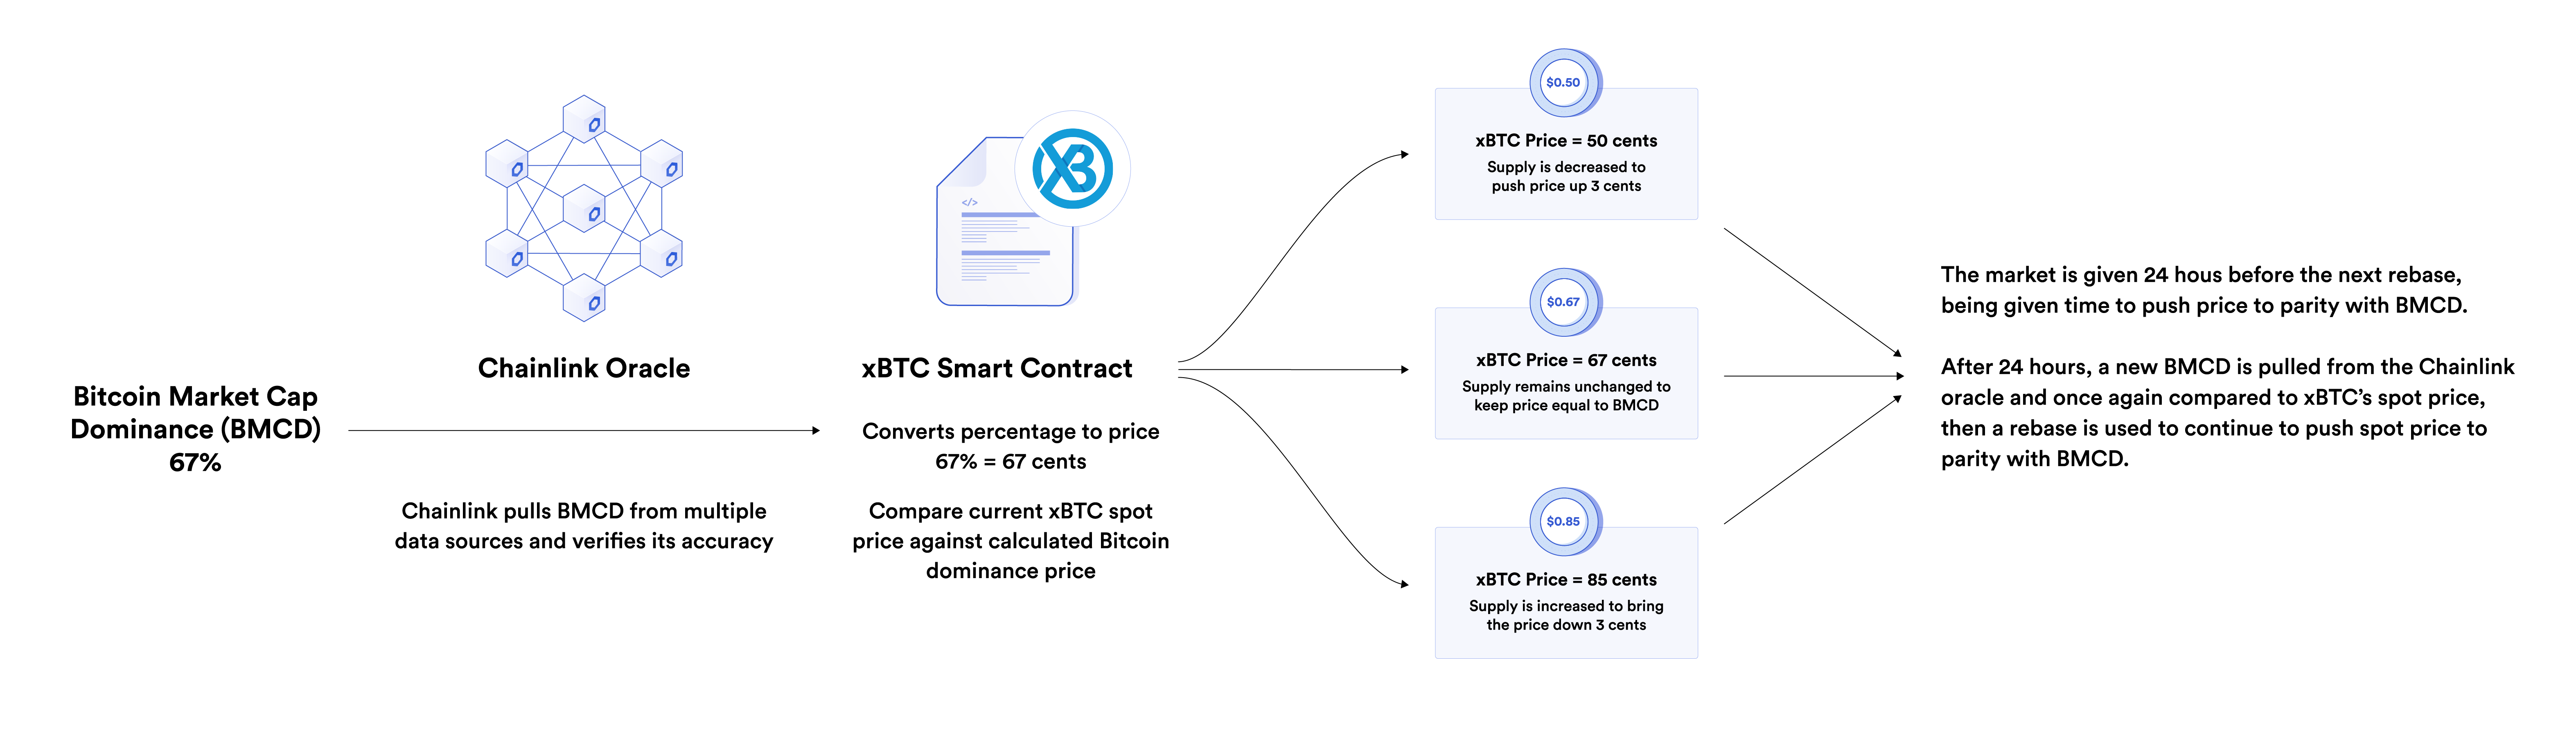 xBTC Using Chainlink Oracles Live on Mainnet to Rebase Digital Assets, Reimagining How Blockchain Tokens Function